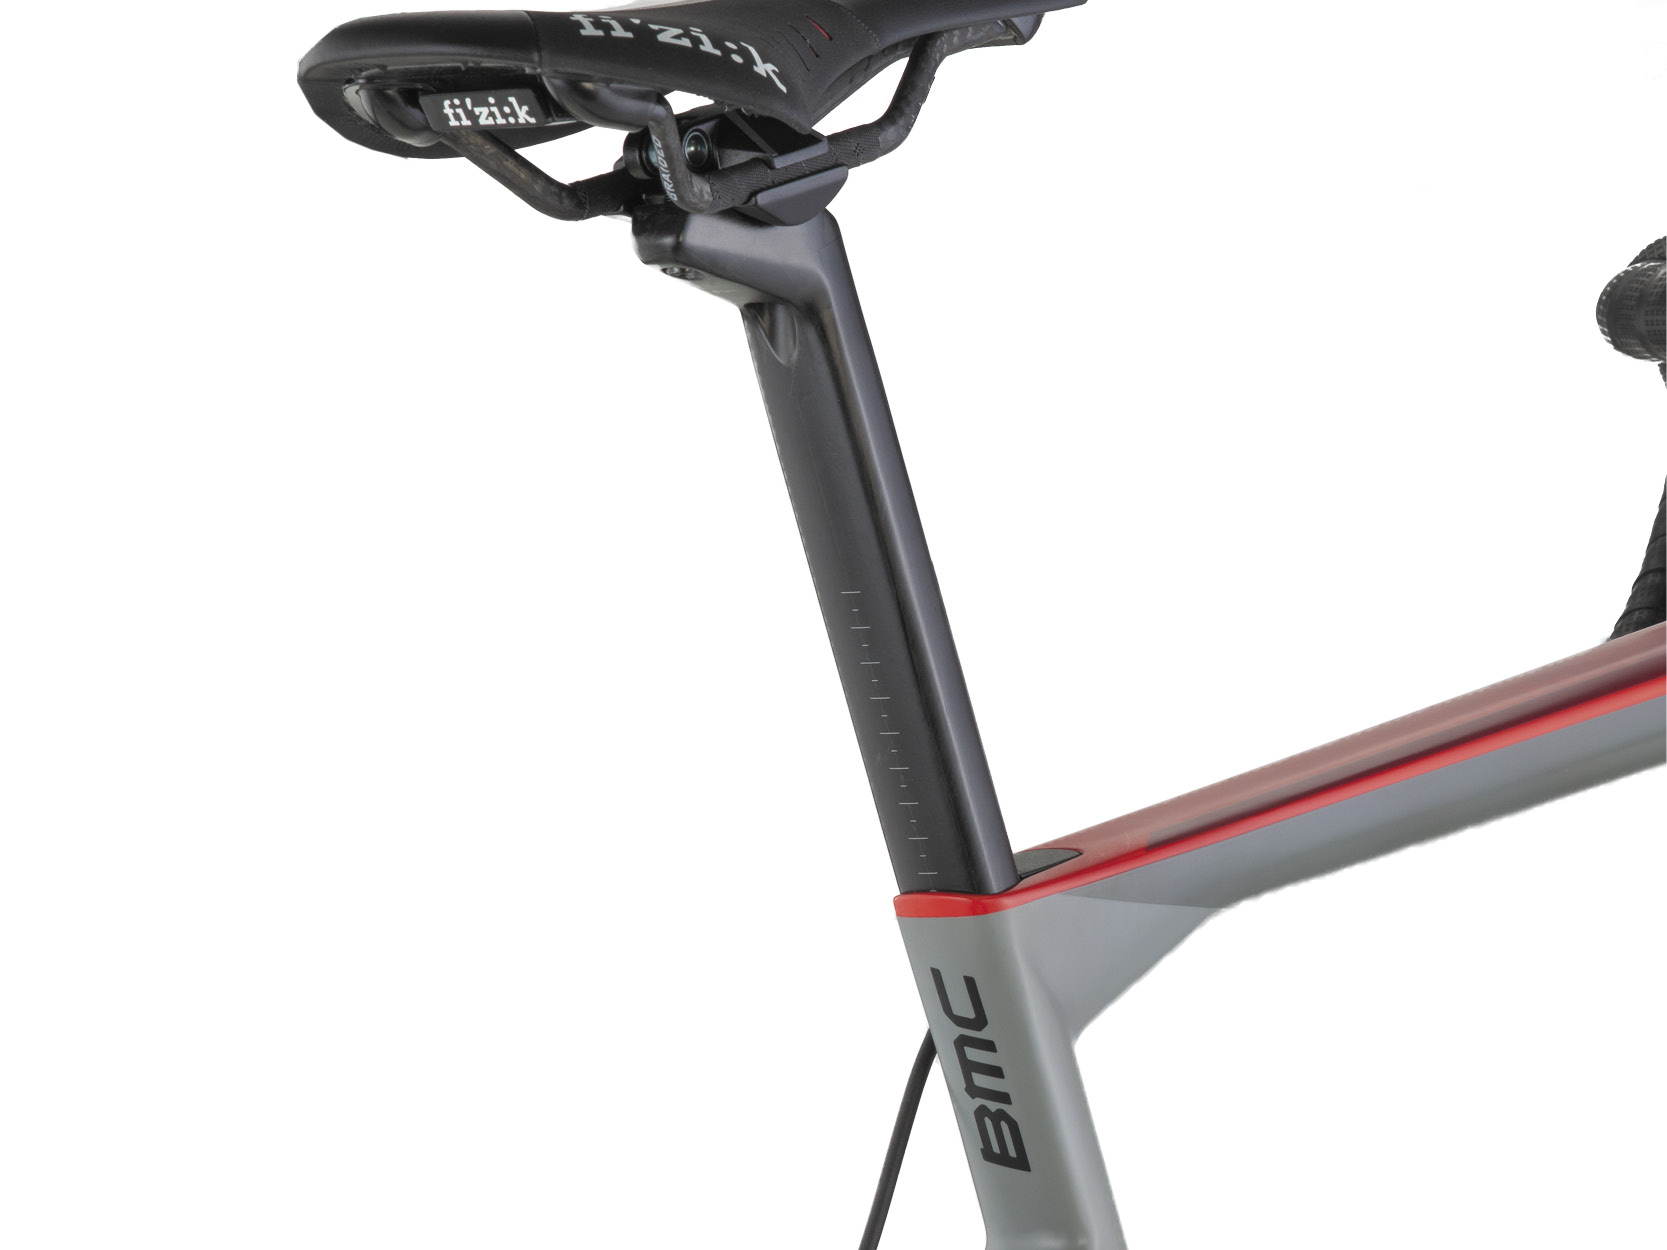 BMC Teammachine SLR Detail6 D-shape post